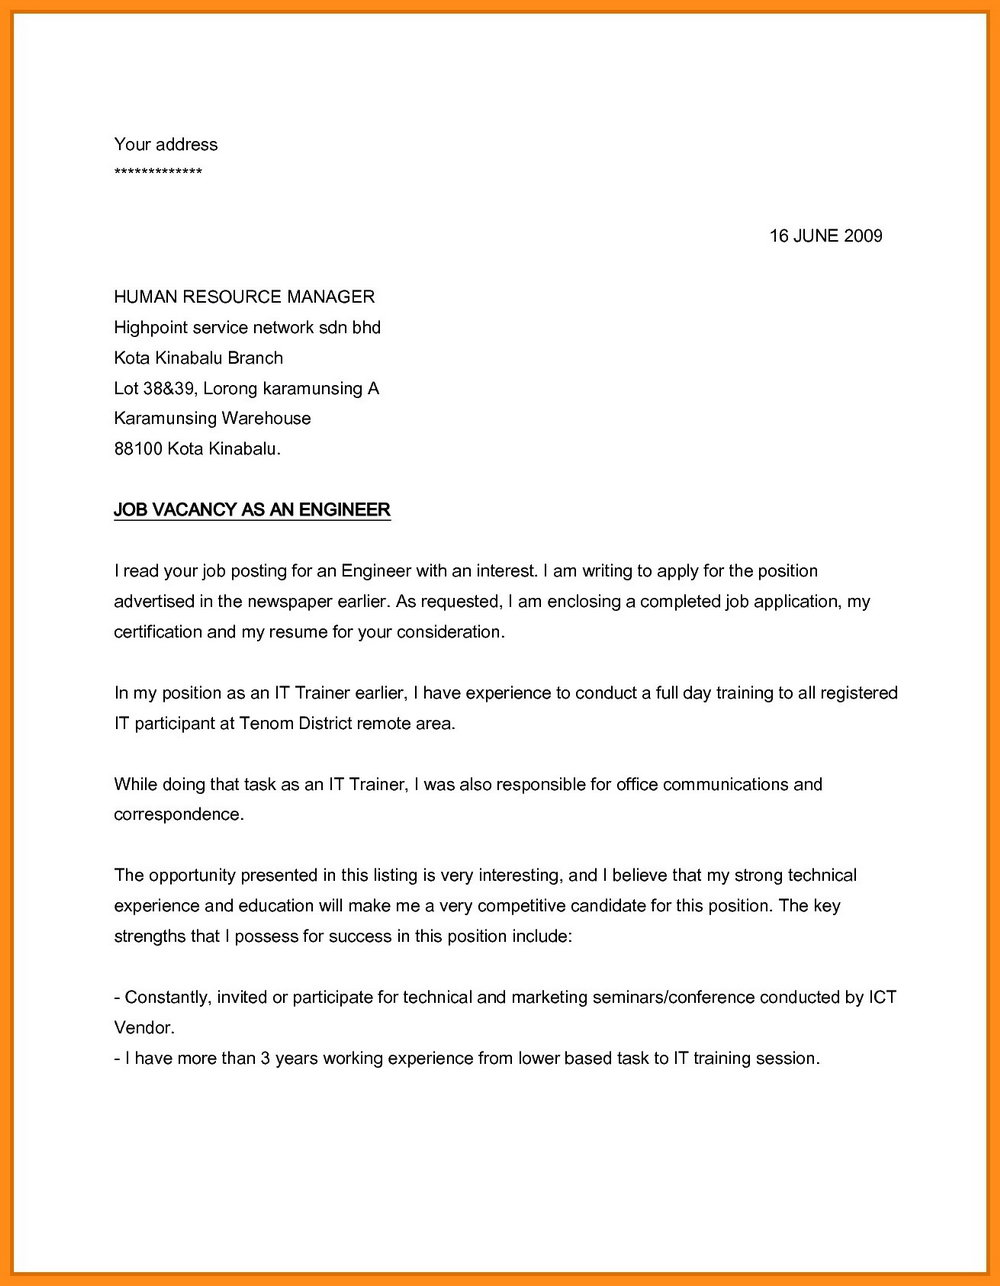 Sample Application Letter For Job Vacancy